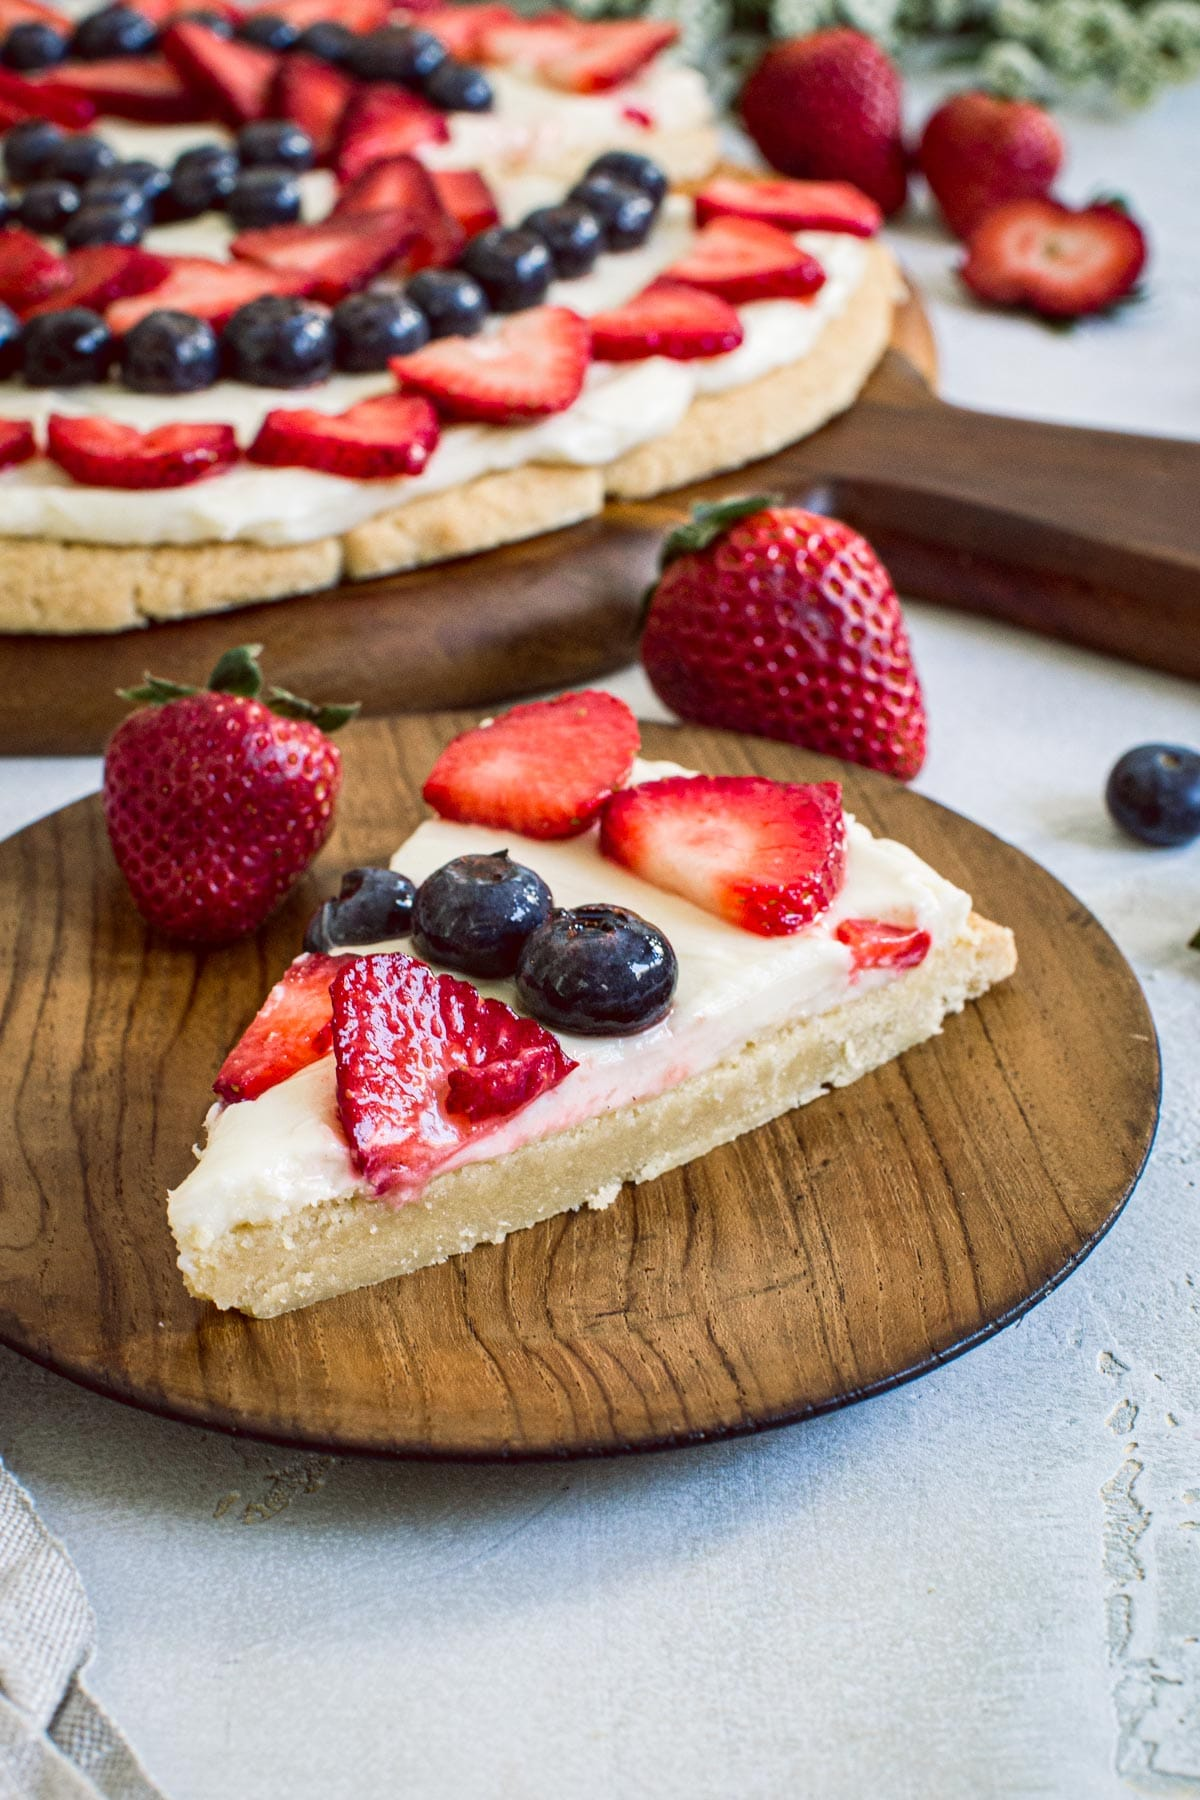 Slice of fruit pizza with strawberries and blueberries on a wooden plate.